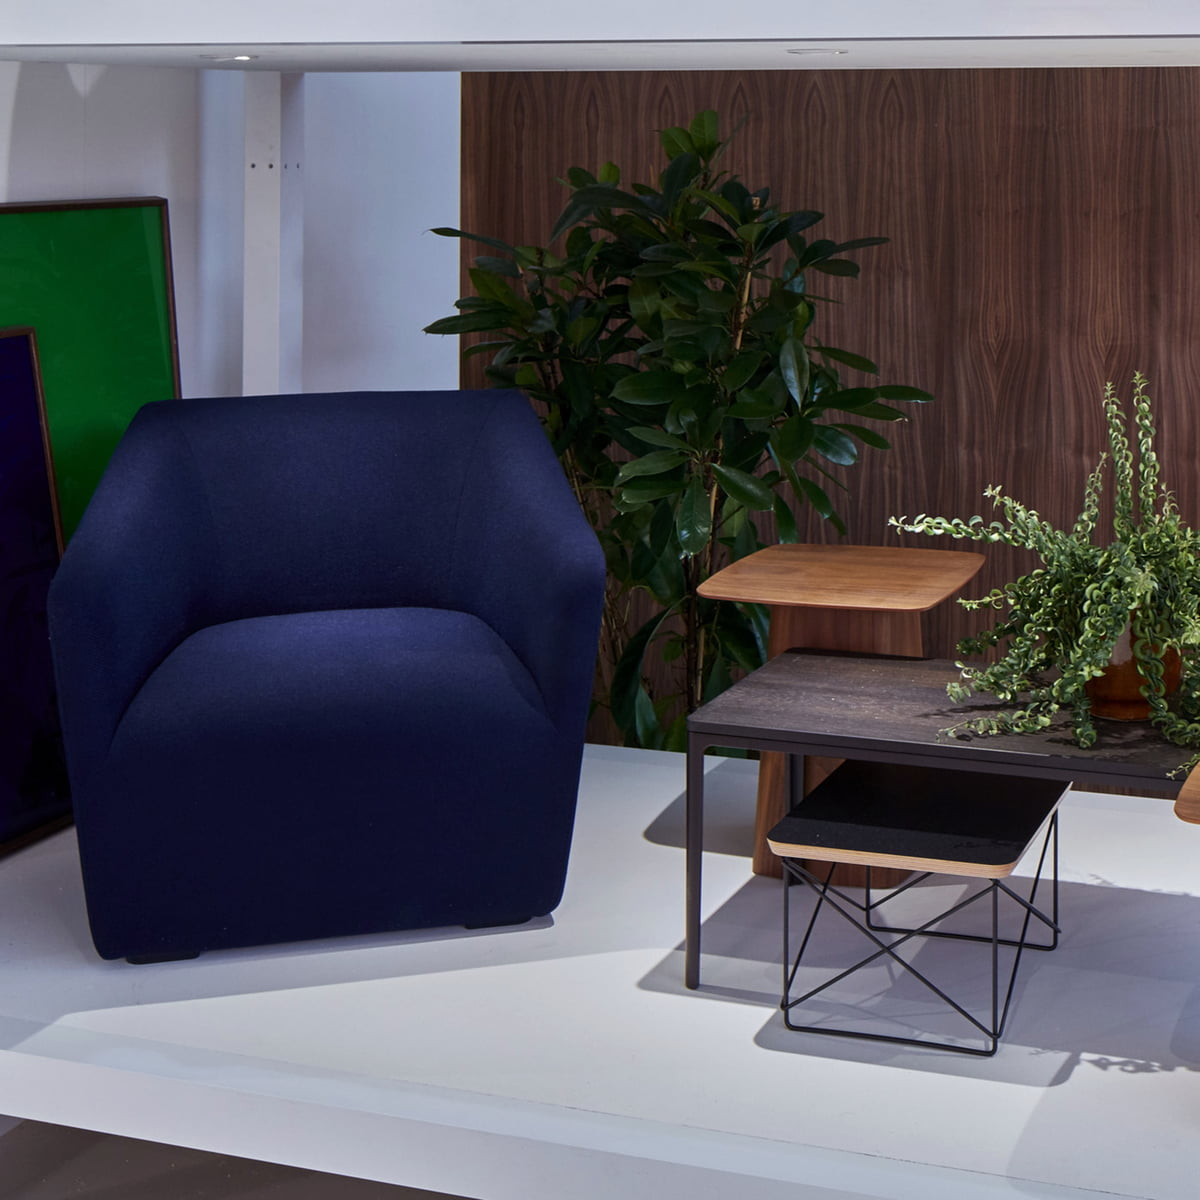 Eames occasional table ltr by vitra connox comfort and wellbeing inside keyboard keysfo Gallery